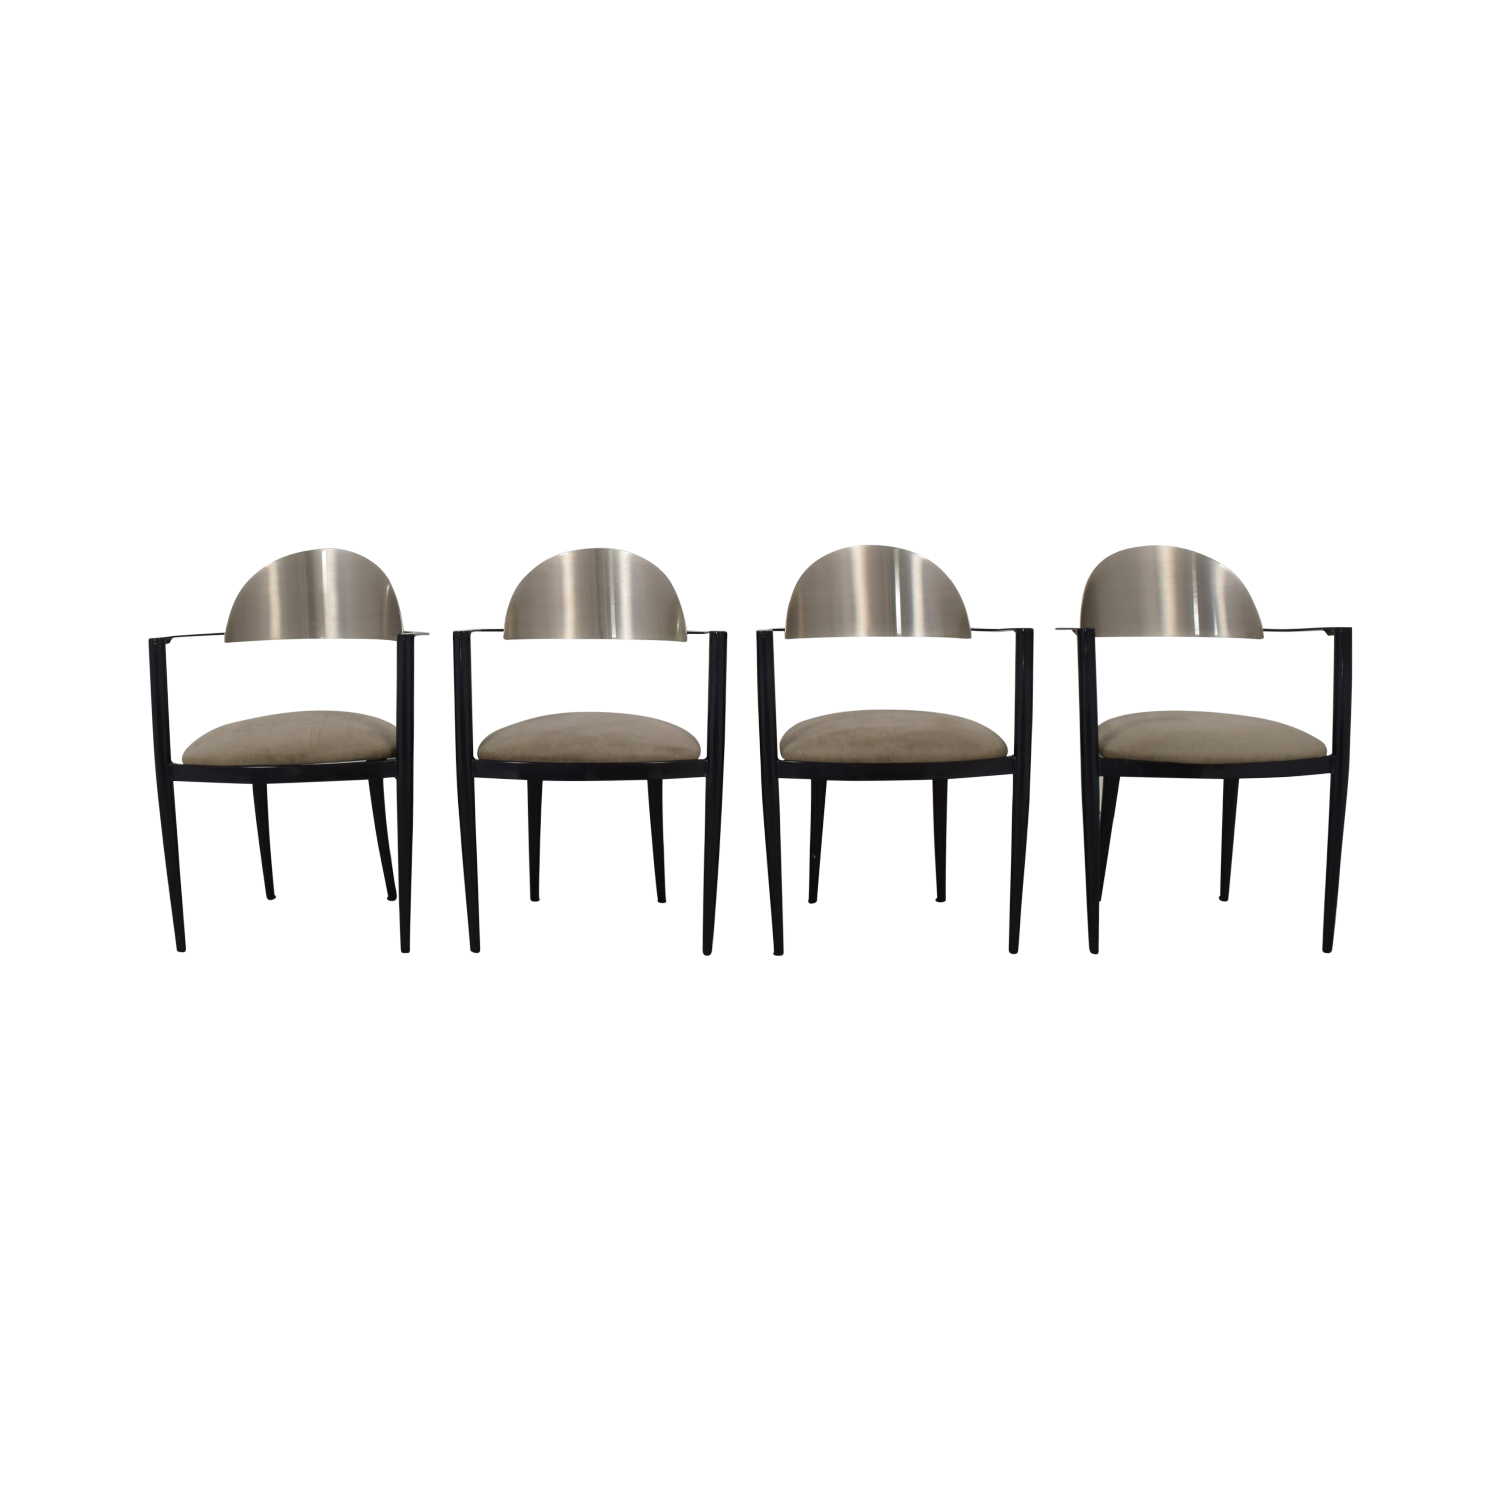 buy  Chrome and Beige Upholstered Dining Chairs online